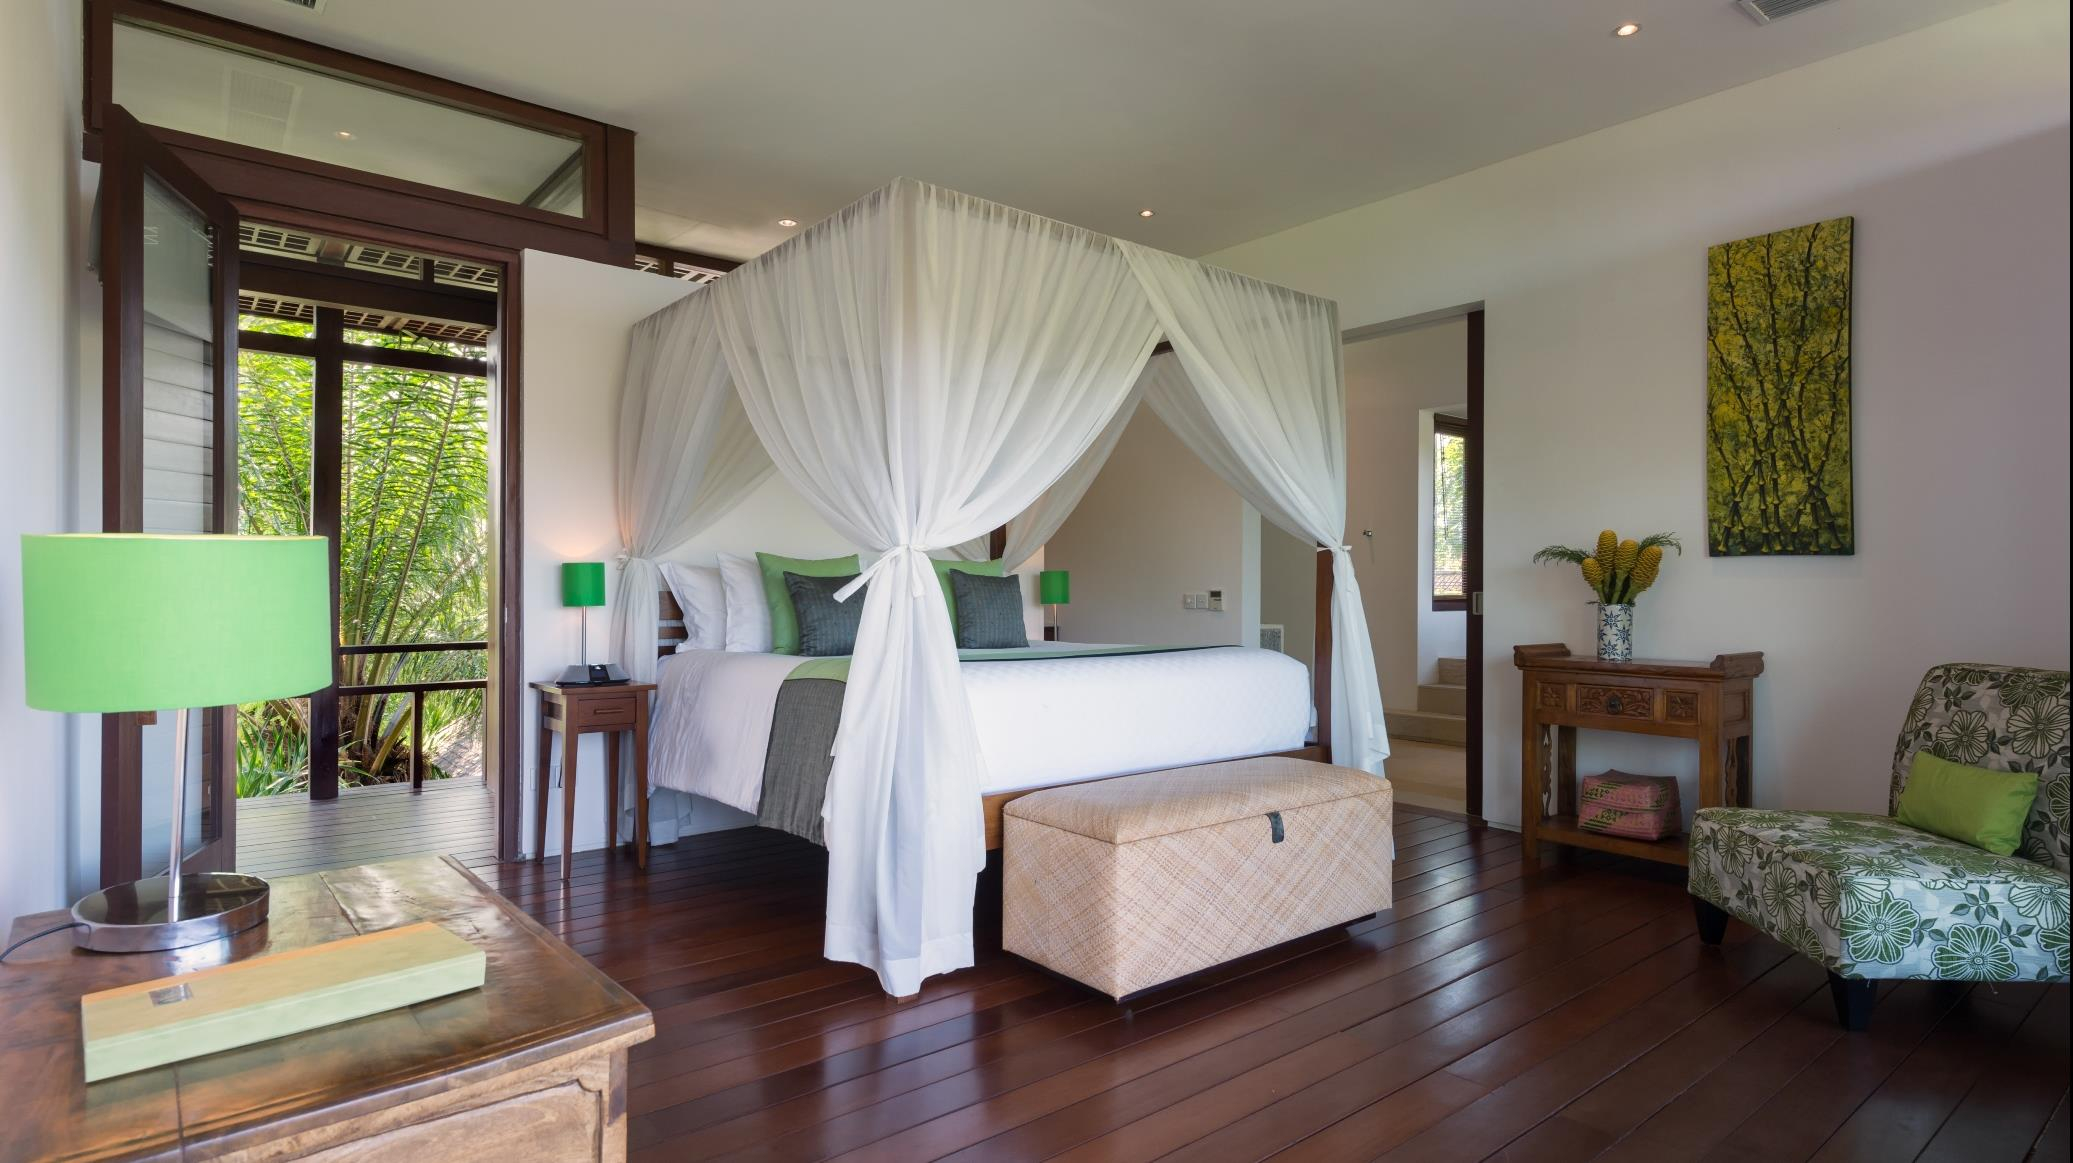 Bedroom with Seating Area - Villa Bendega Nui - Canggu, Bali